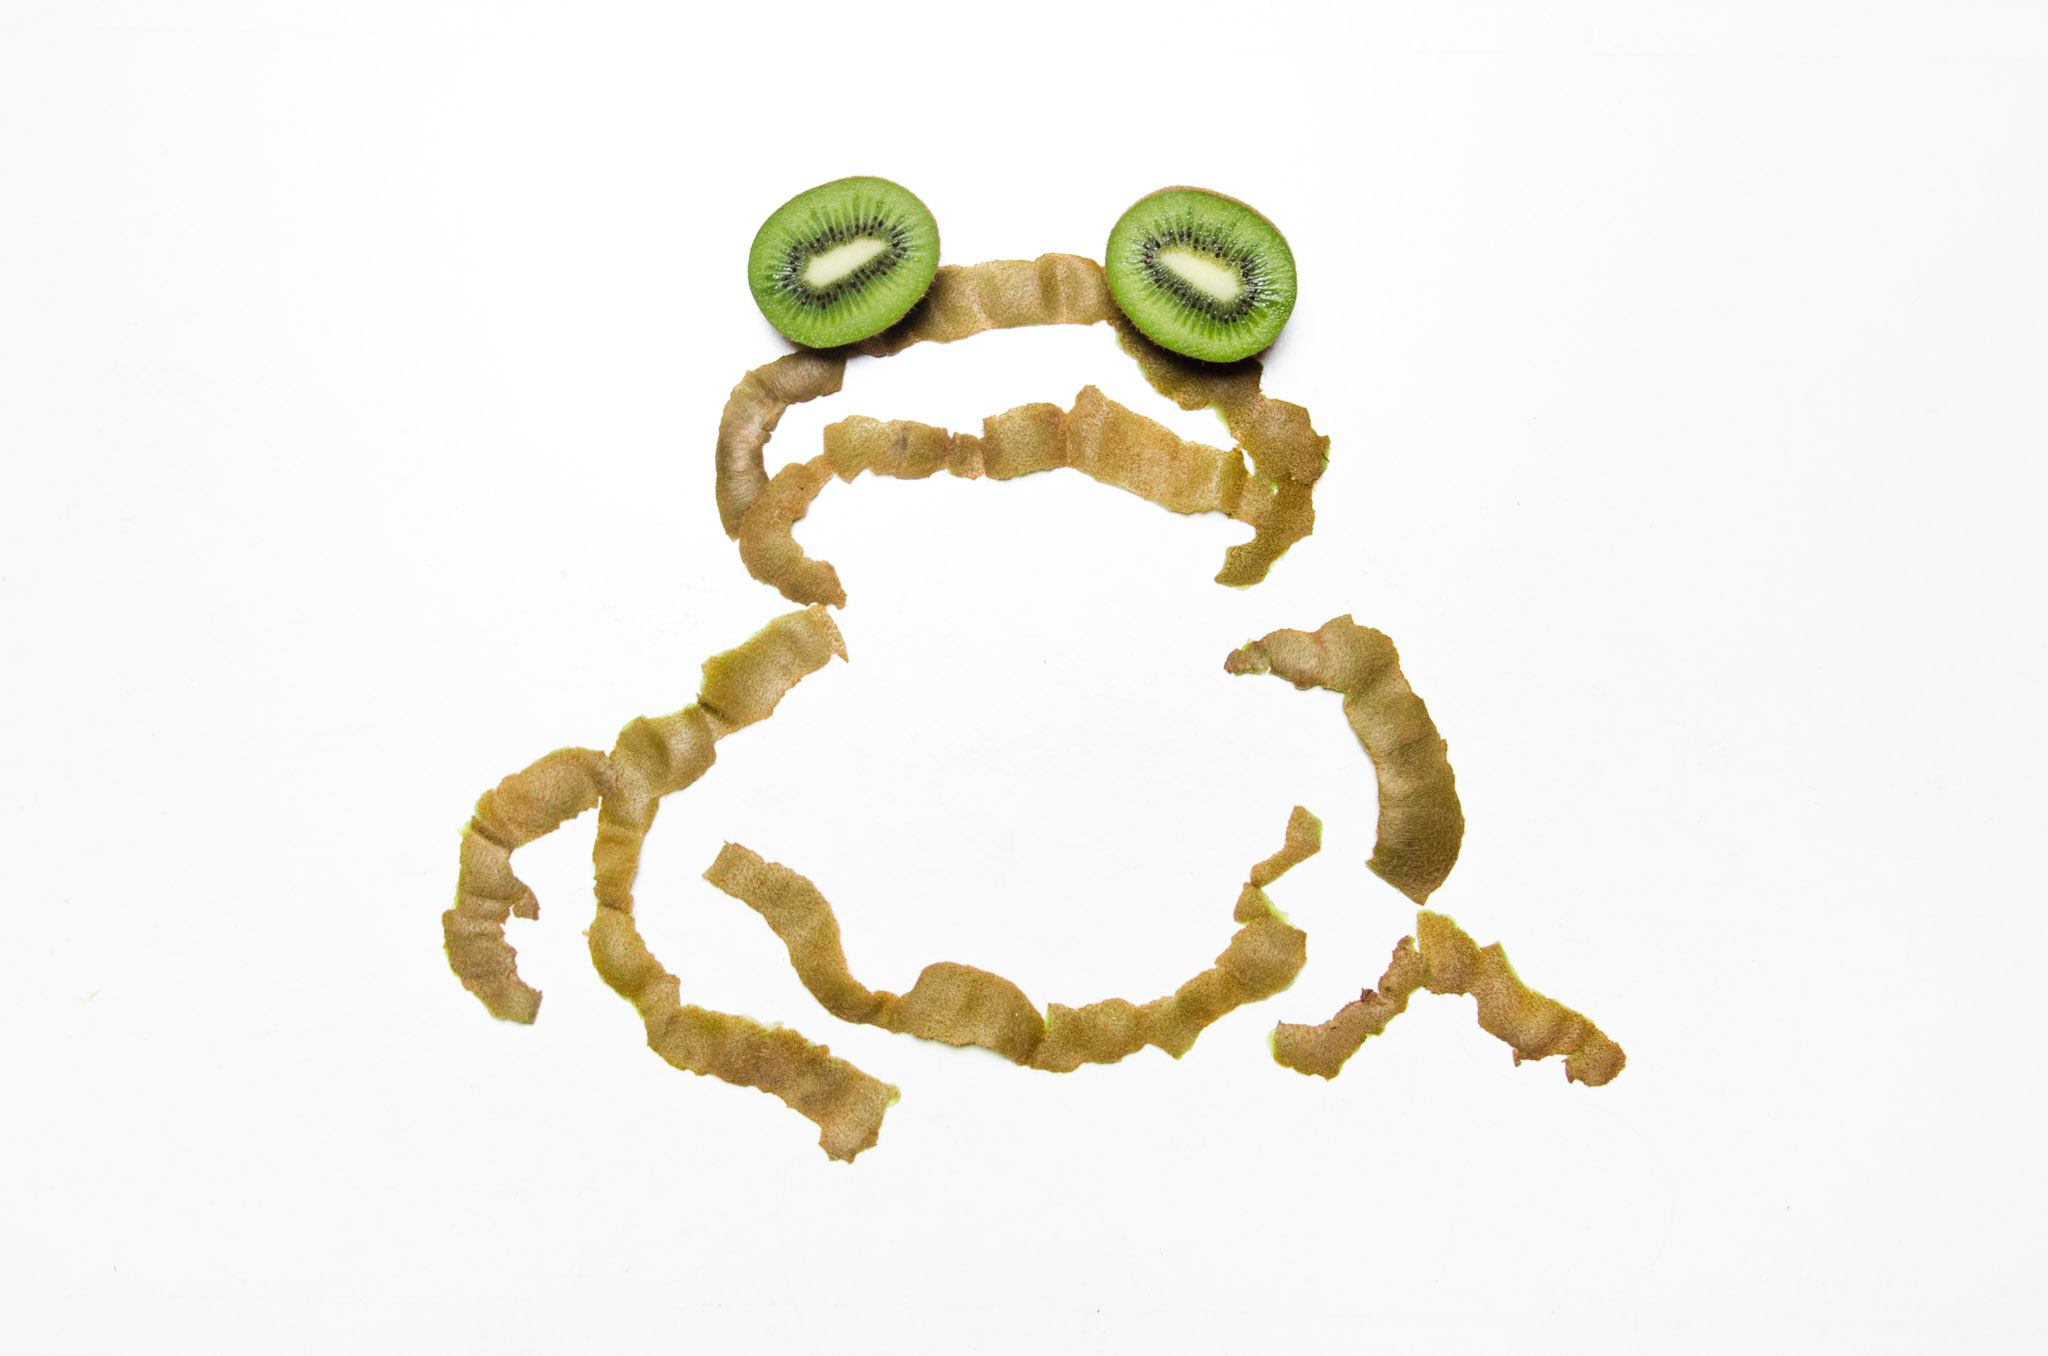 photo of a frog made out of kiwis by Kelly Crull